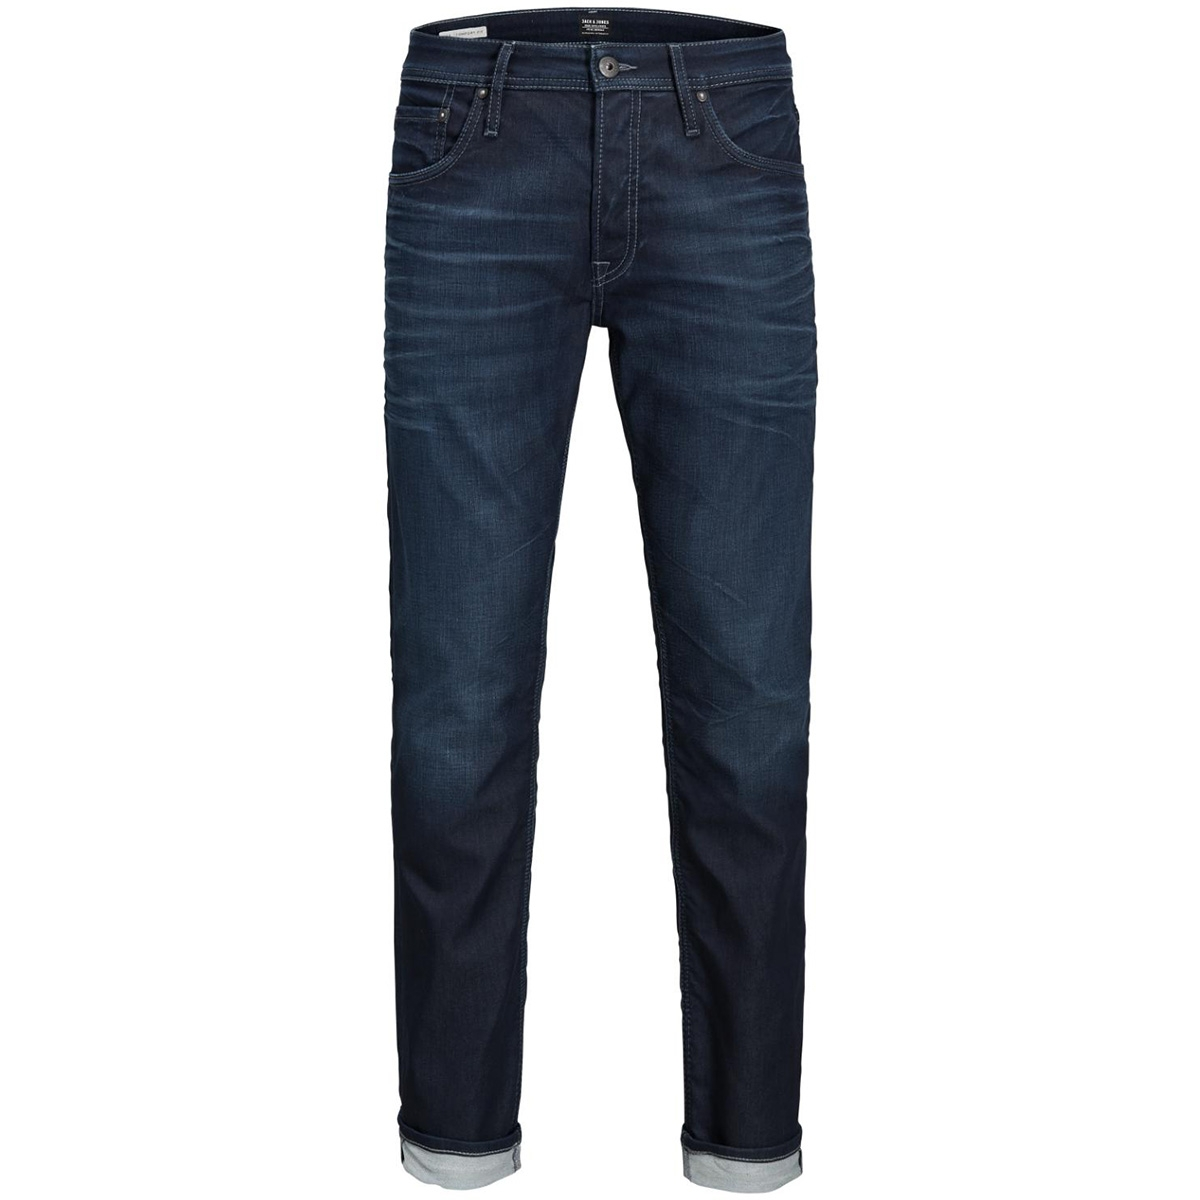 jjimike jjorg jos 097 id.k noos 12126066 jack & jones jeans blue denim